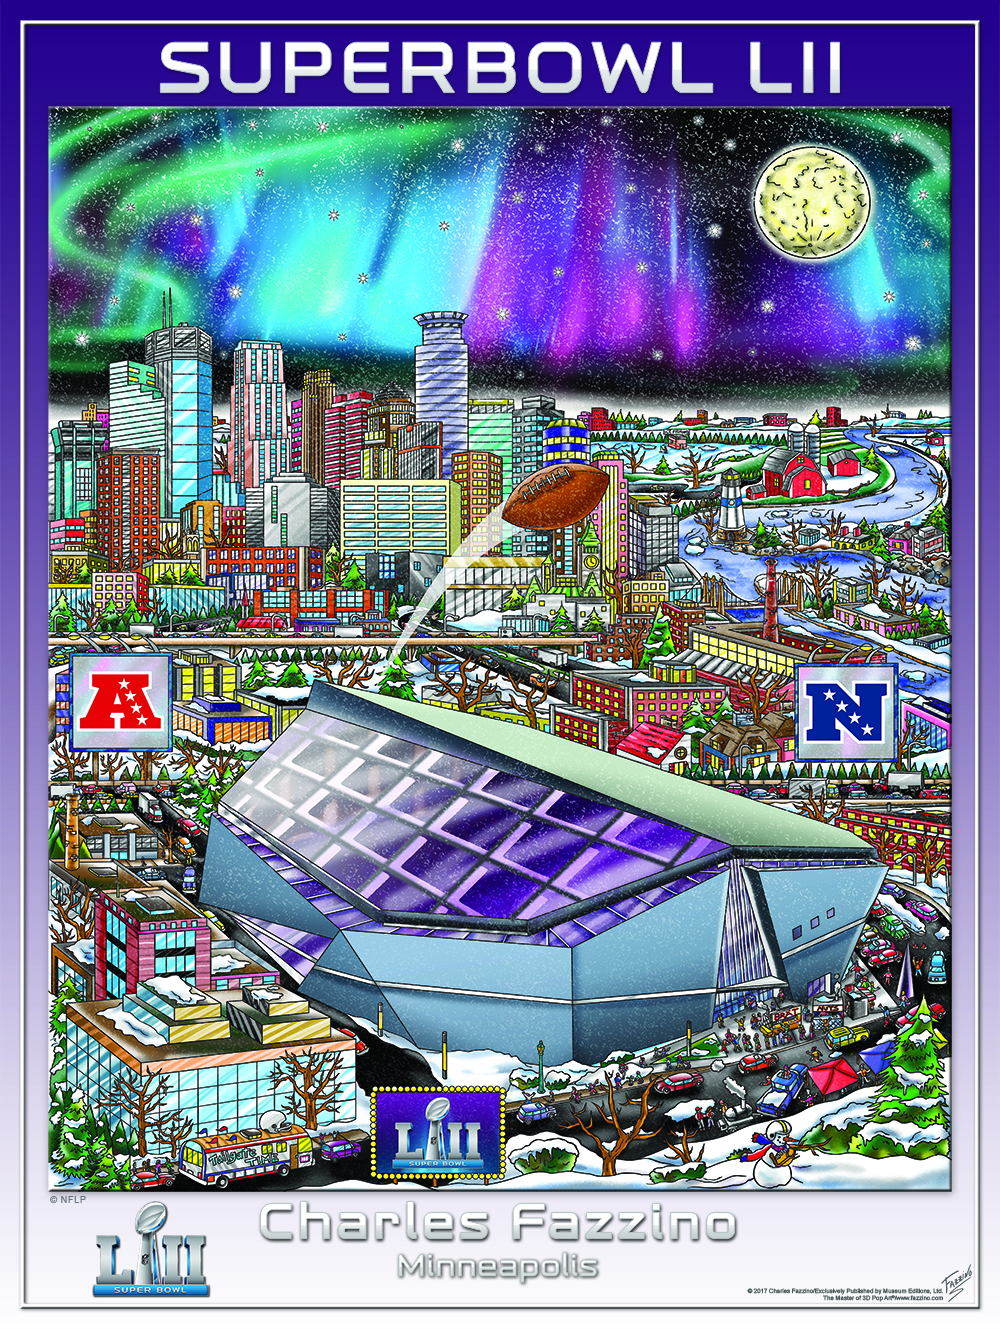 NFL Fazzino Superbowl LII poster or Minneapolis Stadium with aurora lights in the sky